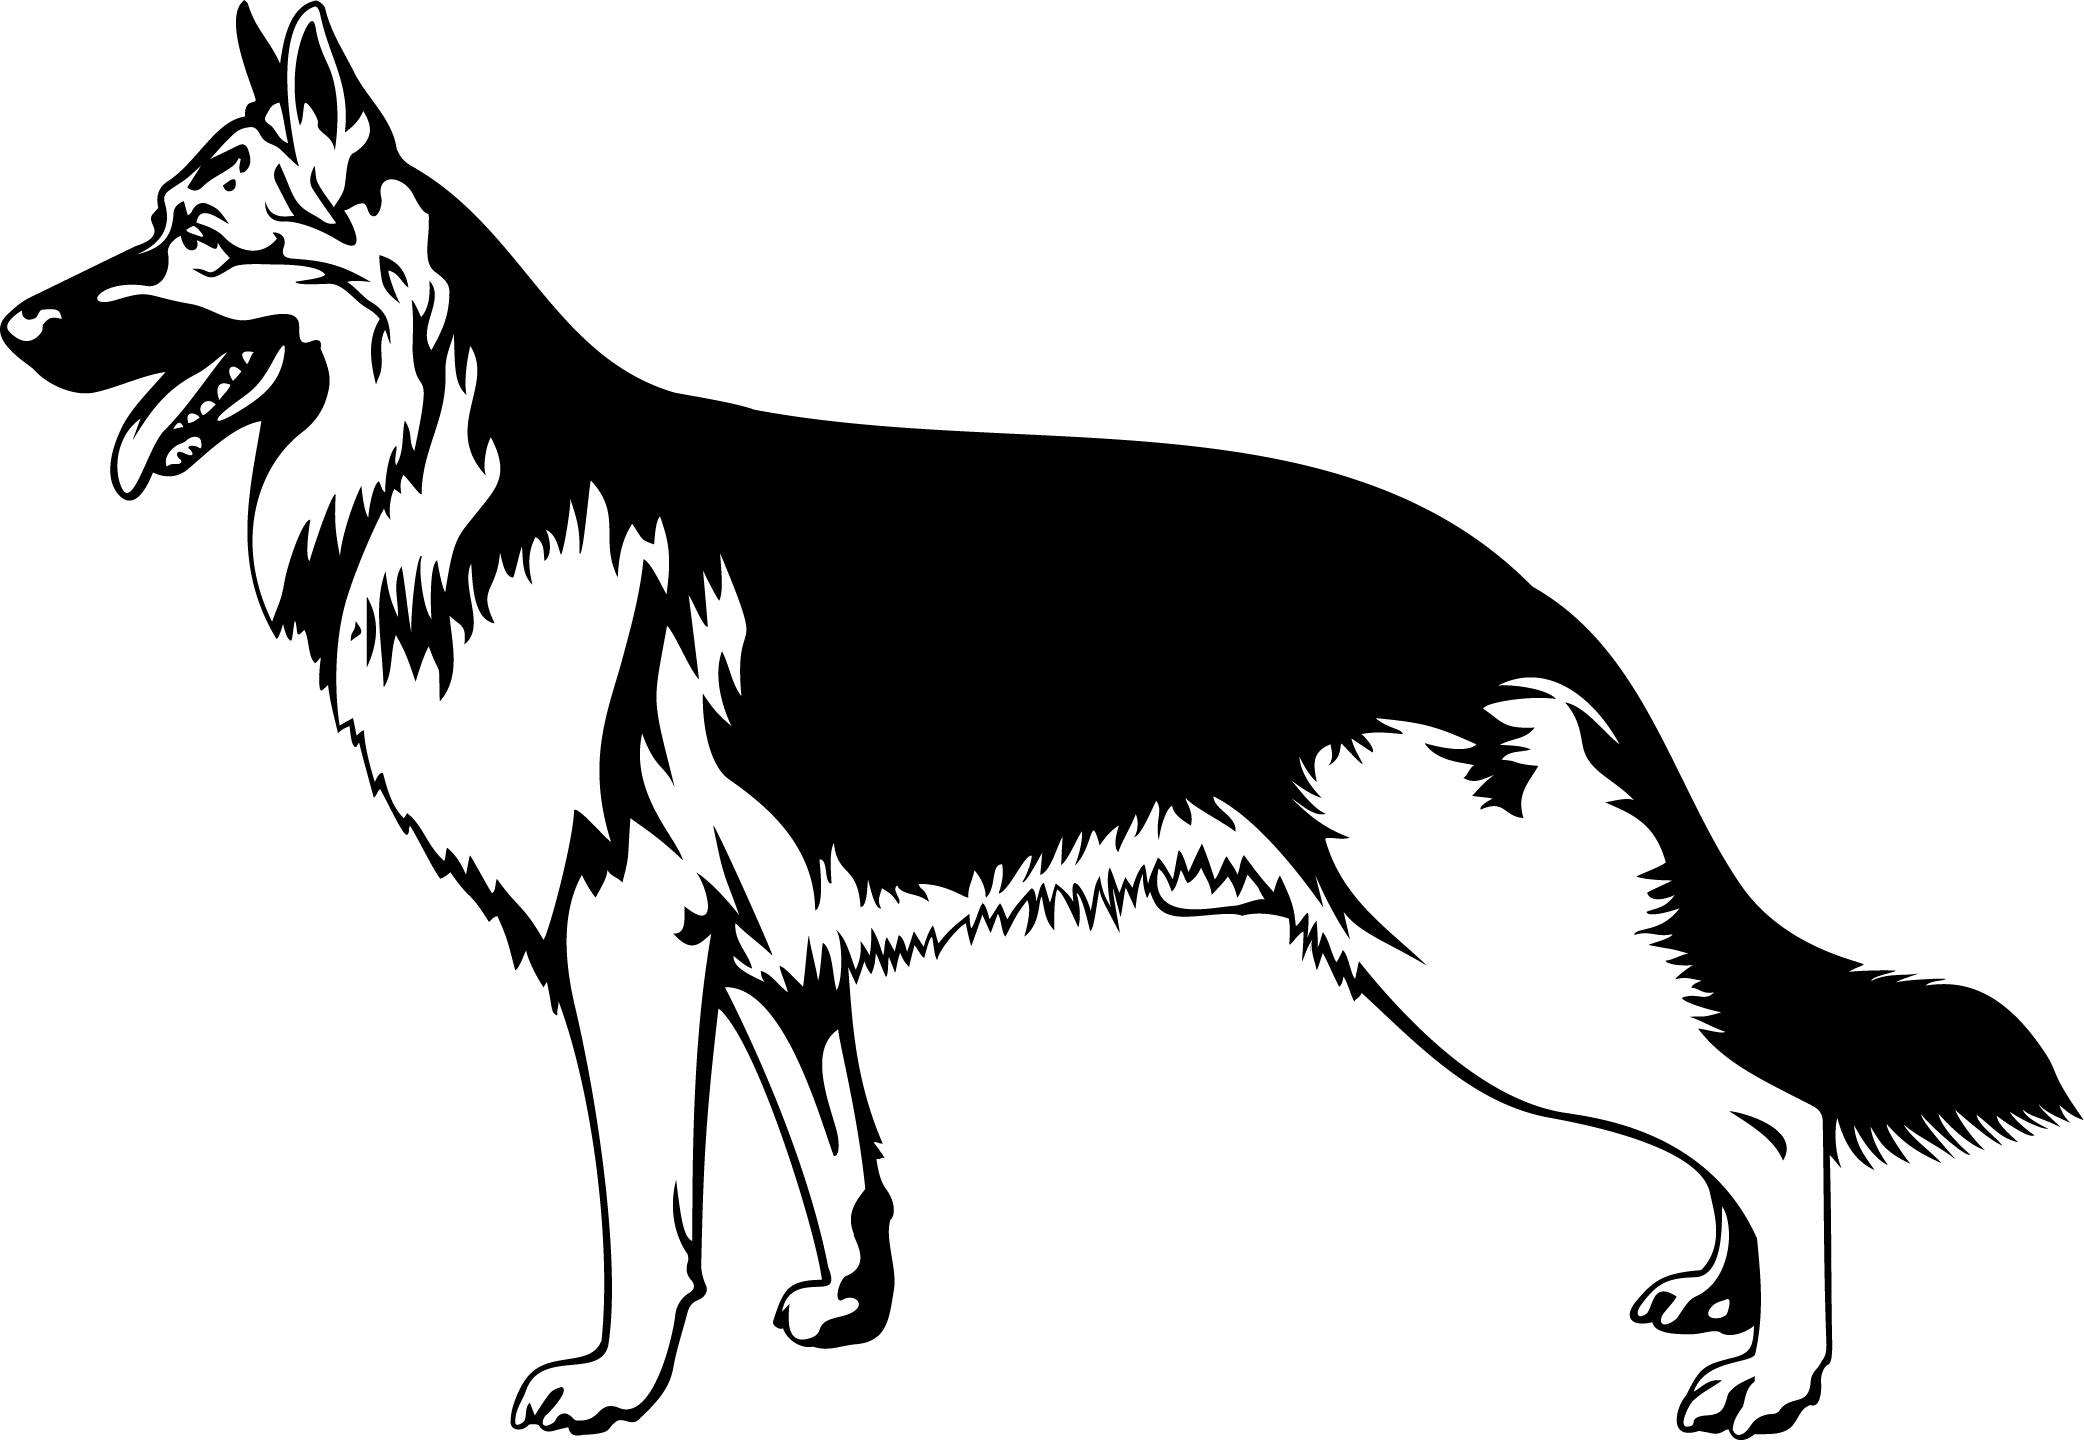 German Shepherd Dog breed Clip art.